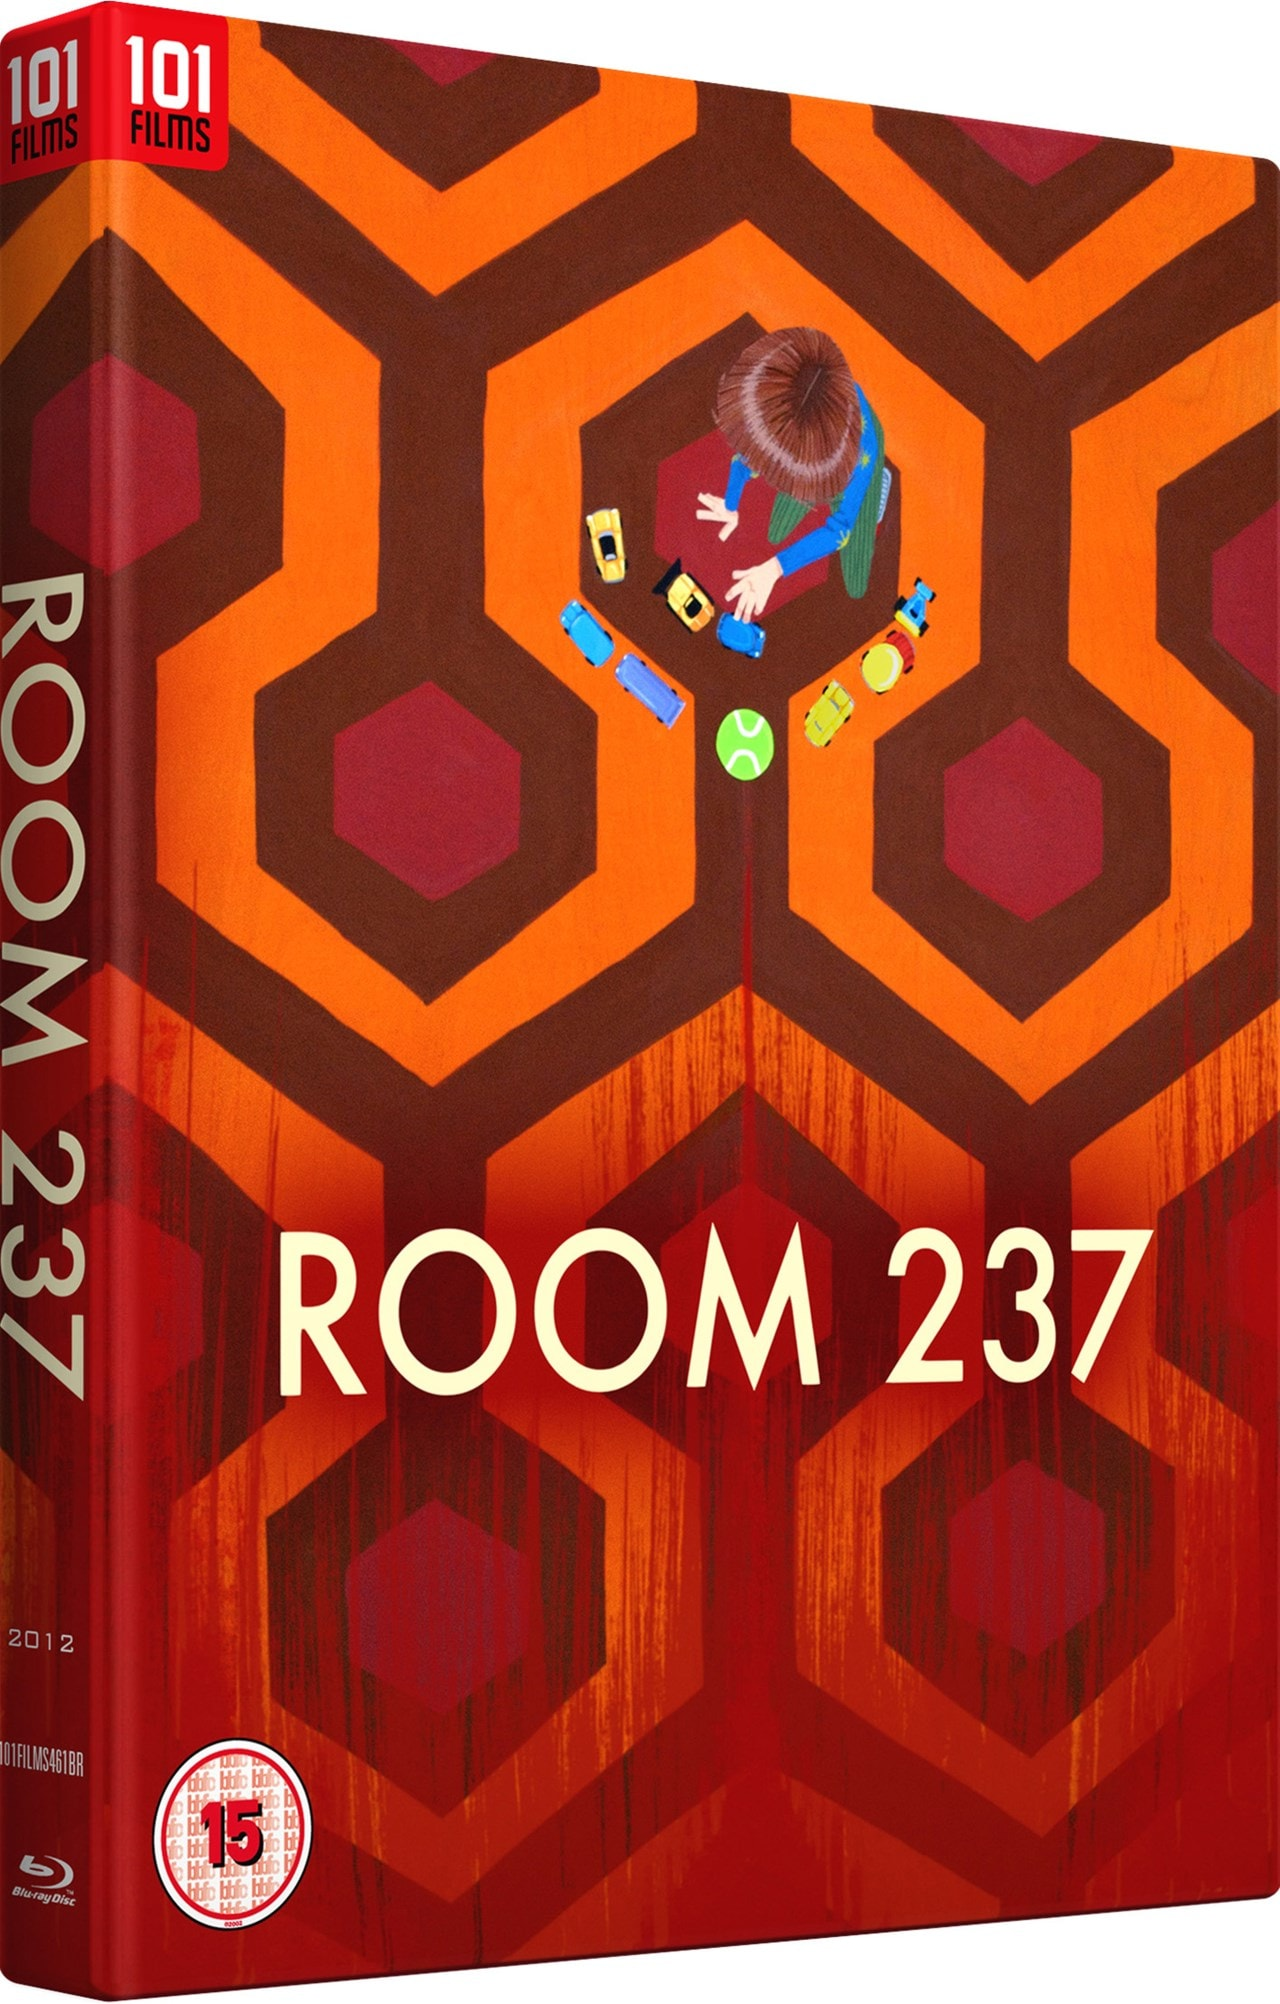 Room 237 Blu Ray Free Shipping Over 163 20 Hmv Store